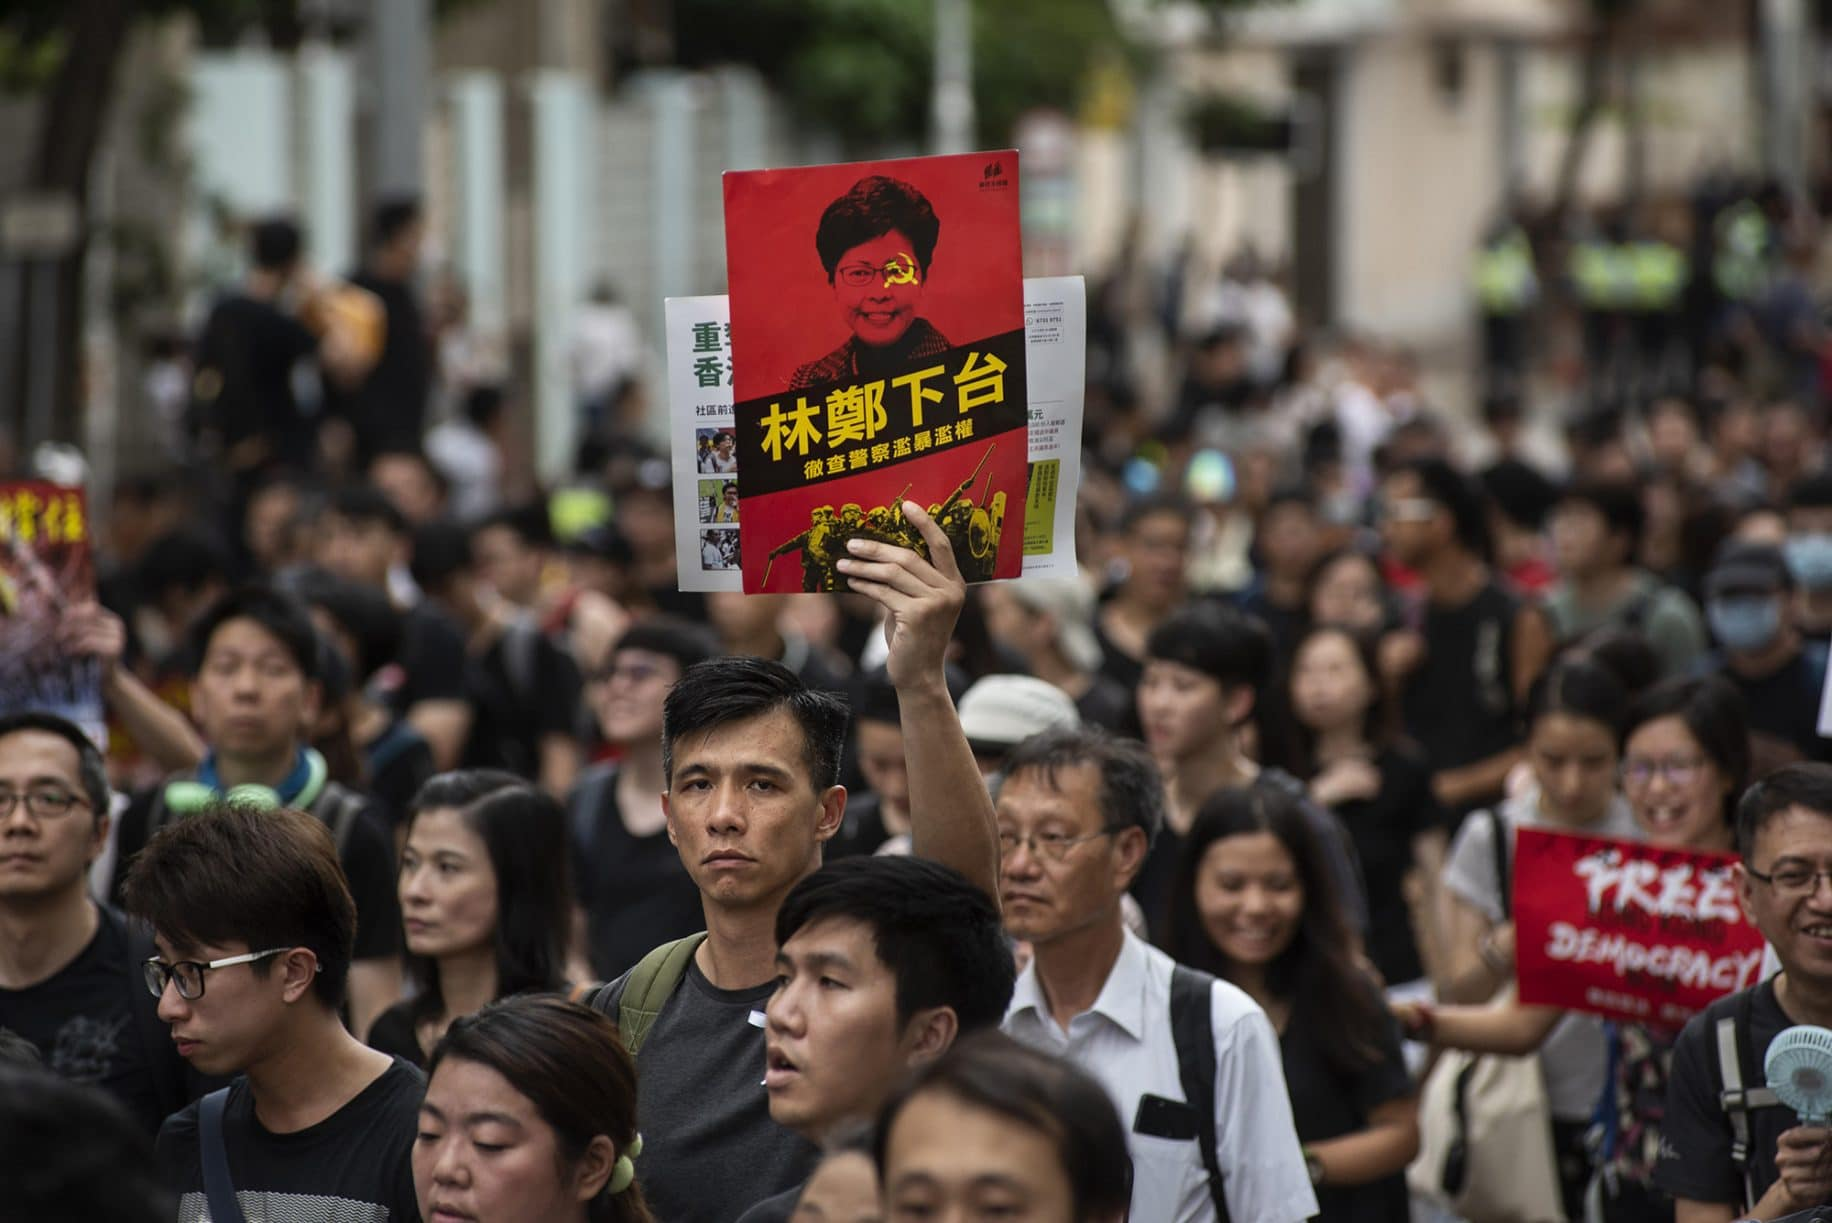 Dozens injured after police storm Hong Kong shopping mall, pursue protesters